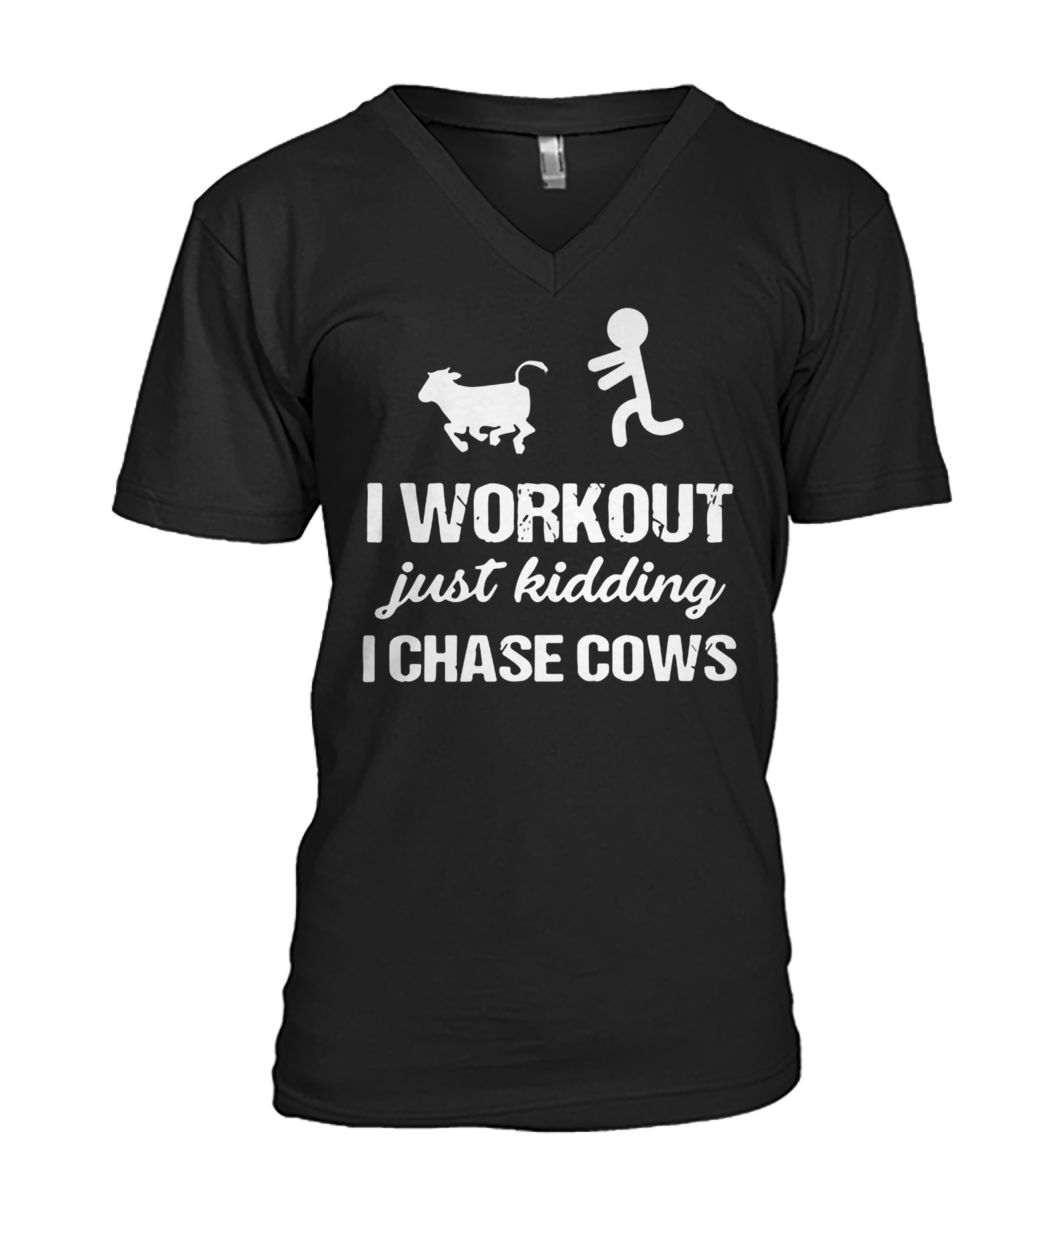 I workout just kidding I chase cows mens v-neck